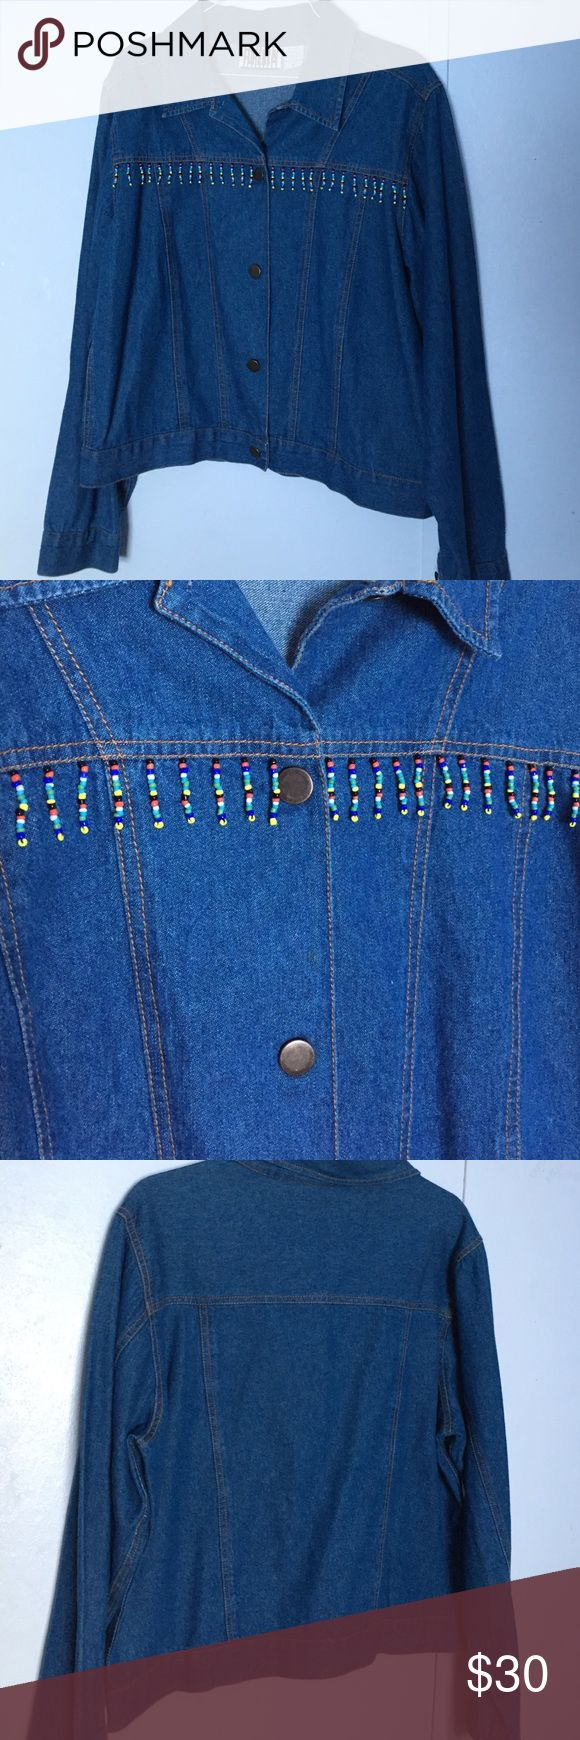 CUTE Lady's Denim Jacket CUTE lady's hip-length denim jacket with button front closure, beaded fringe on the front for design and long sleeves! Perfect for work and play!! Worn once so practically new! RORENZA Jackets & Coats Jean Jackets